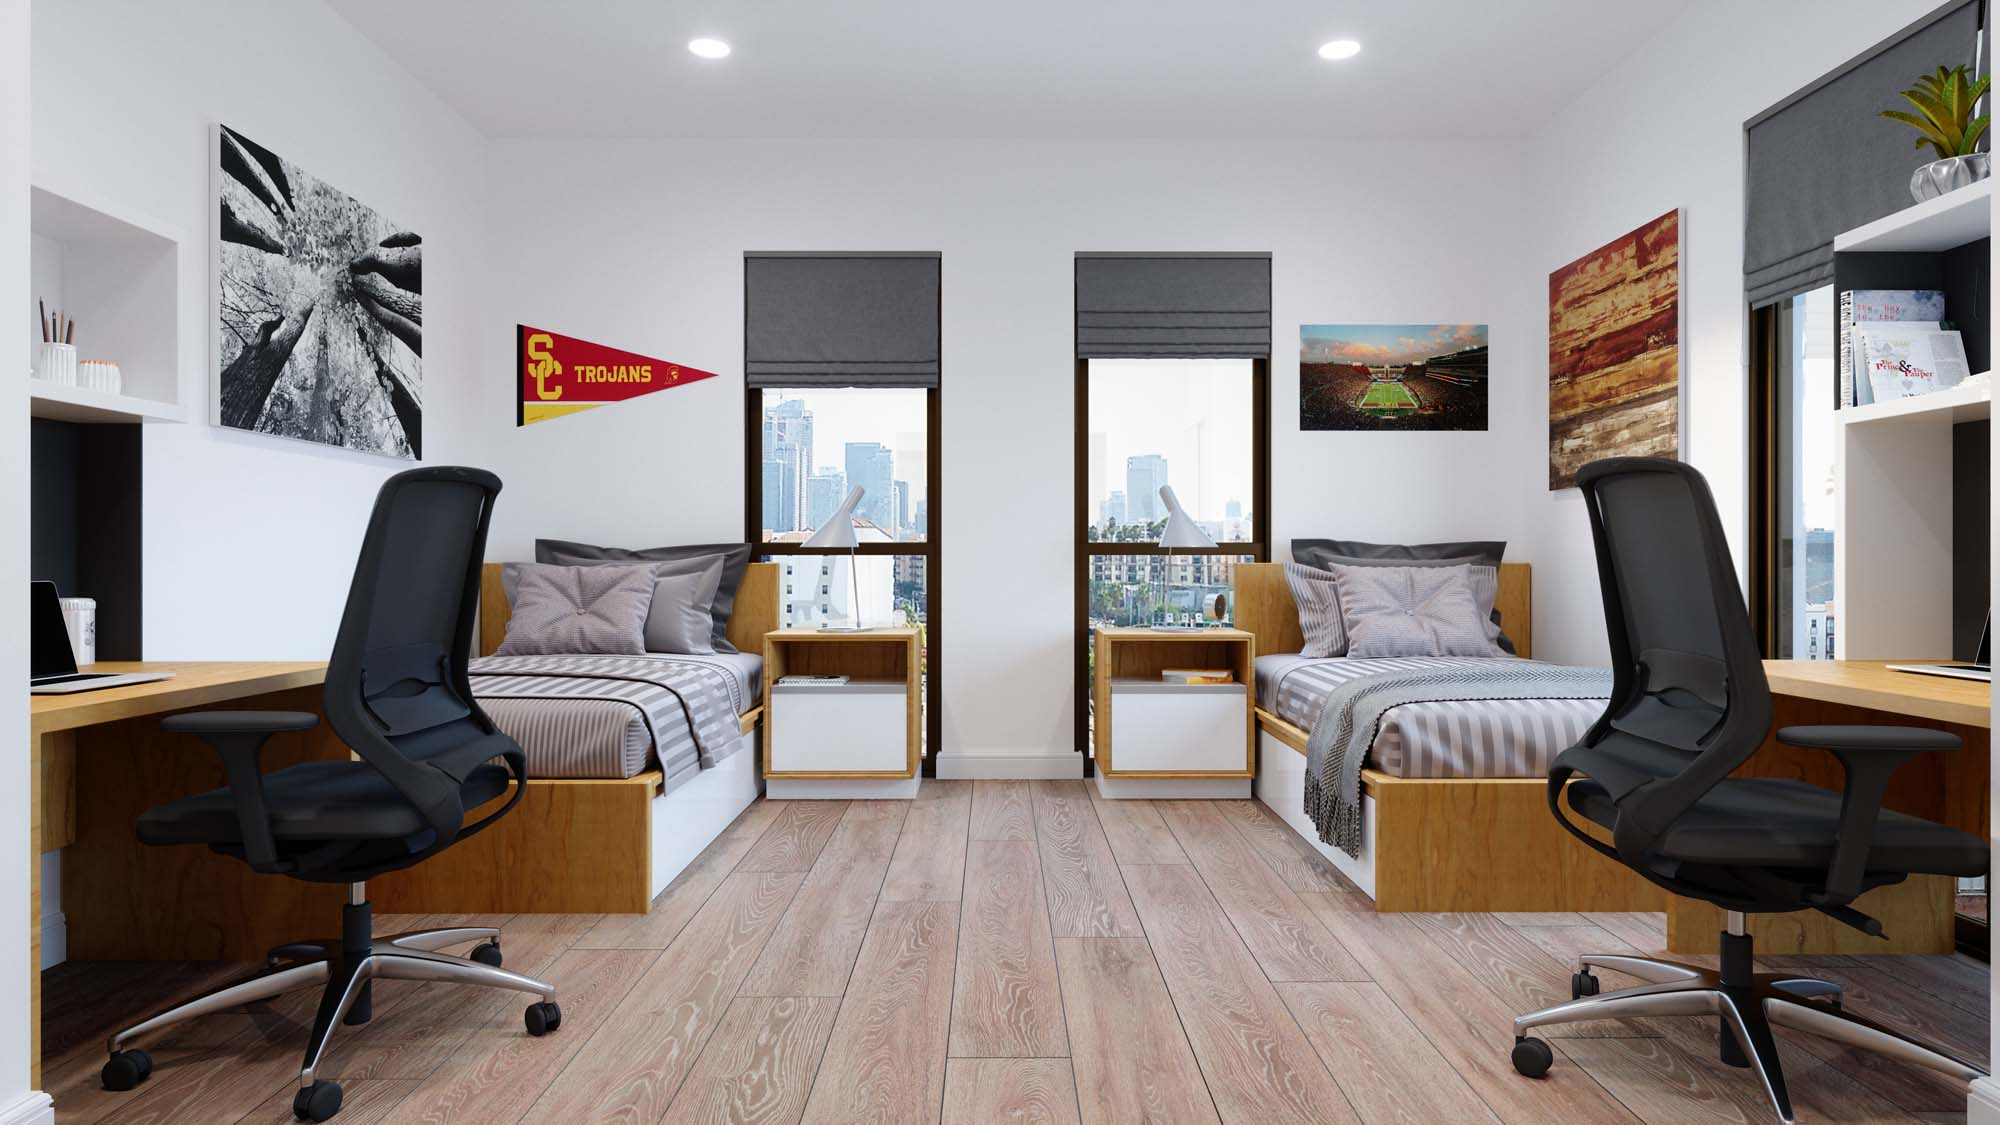 bedroom area with two beds, computers and desks, wood-style flooring, and windows